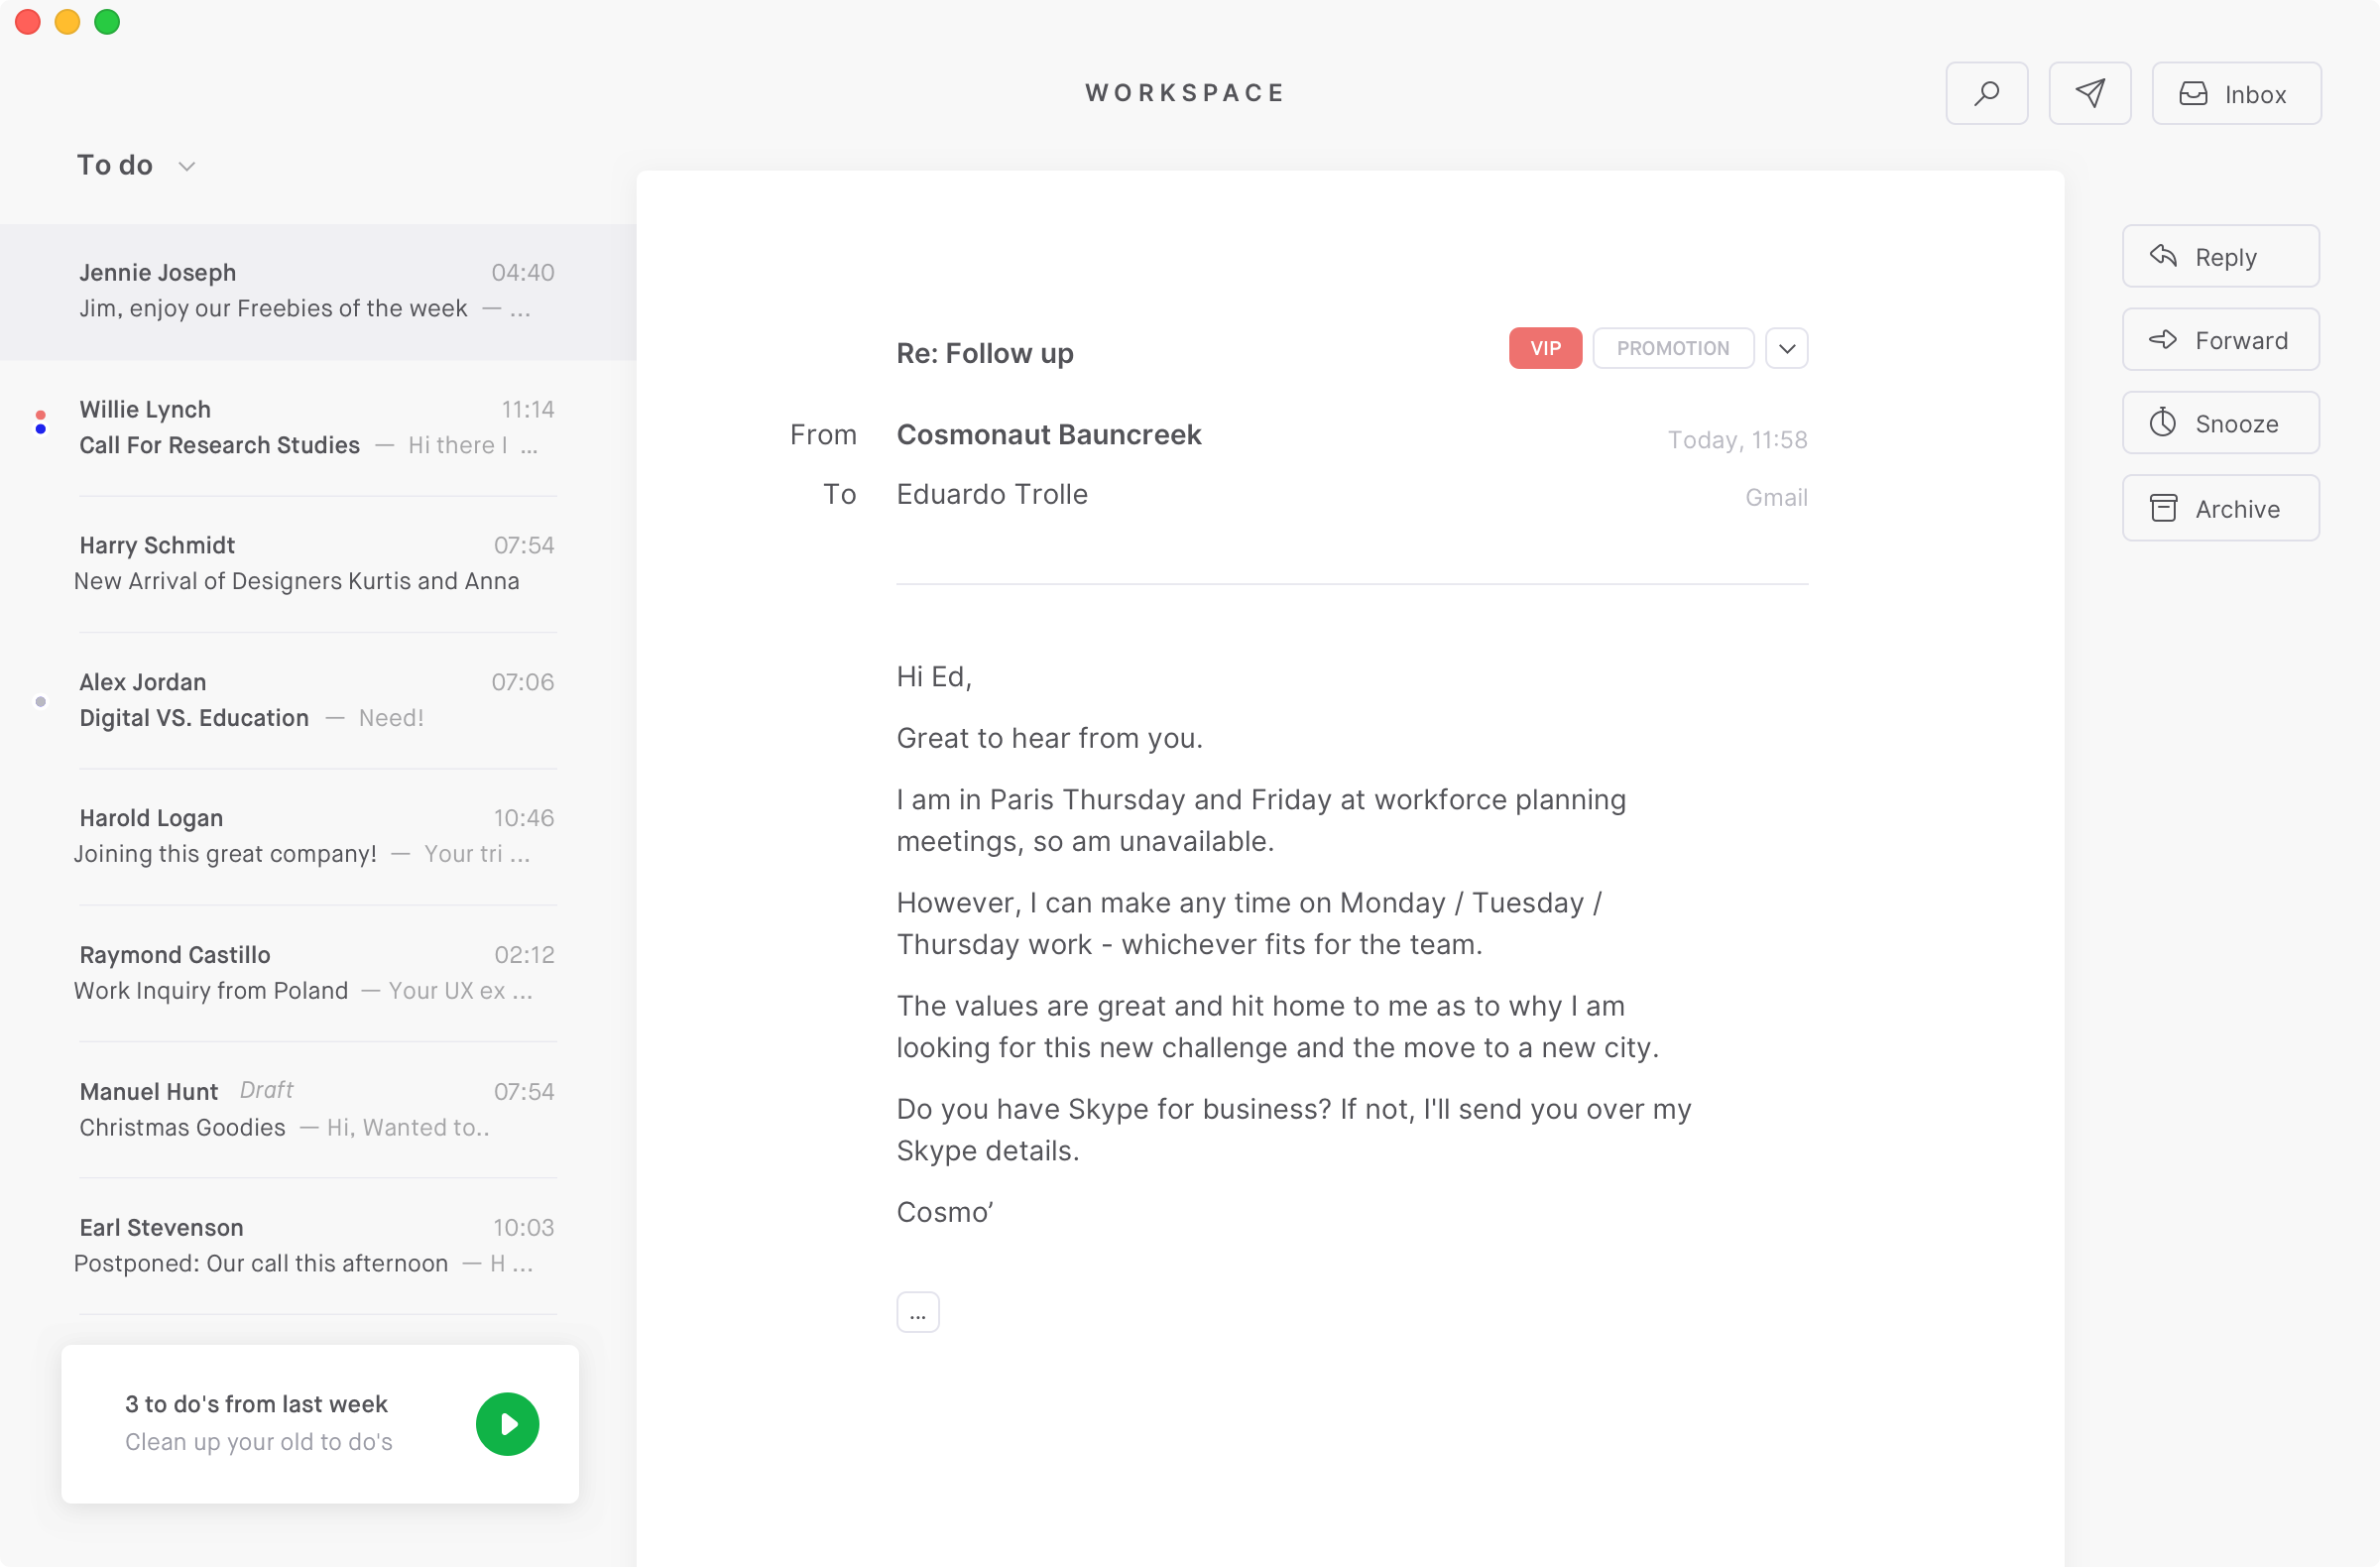 The workspace in Tempo gives you direct access to all the mails that you've marked to tackle later on